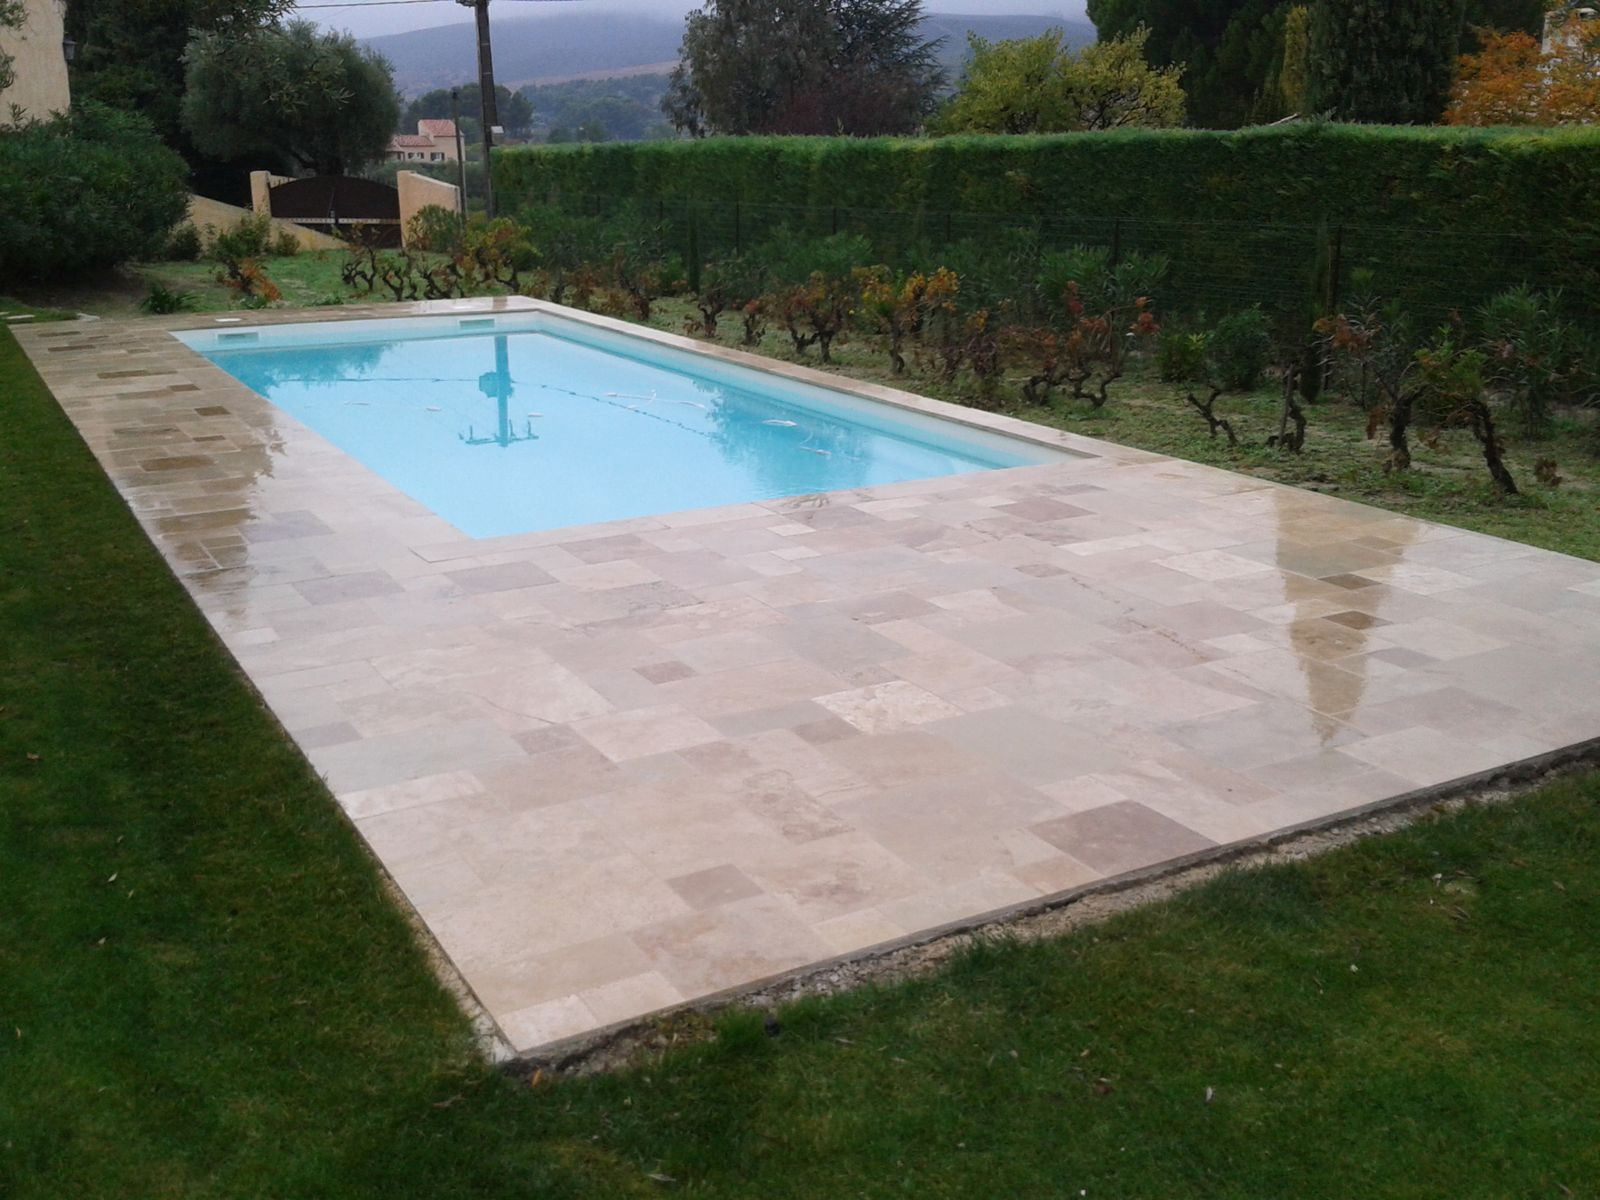 Colle pour carrelage piscine 28 images colle carrelage for Carrelage piscine